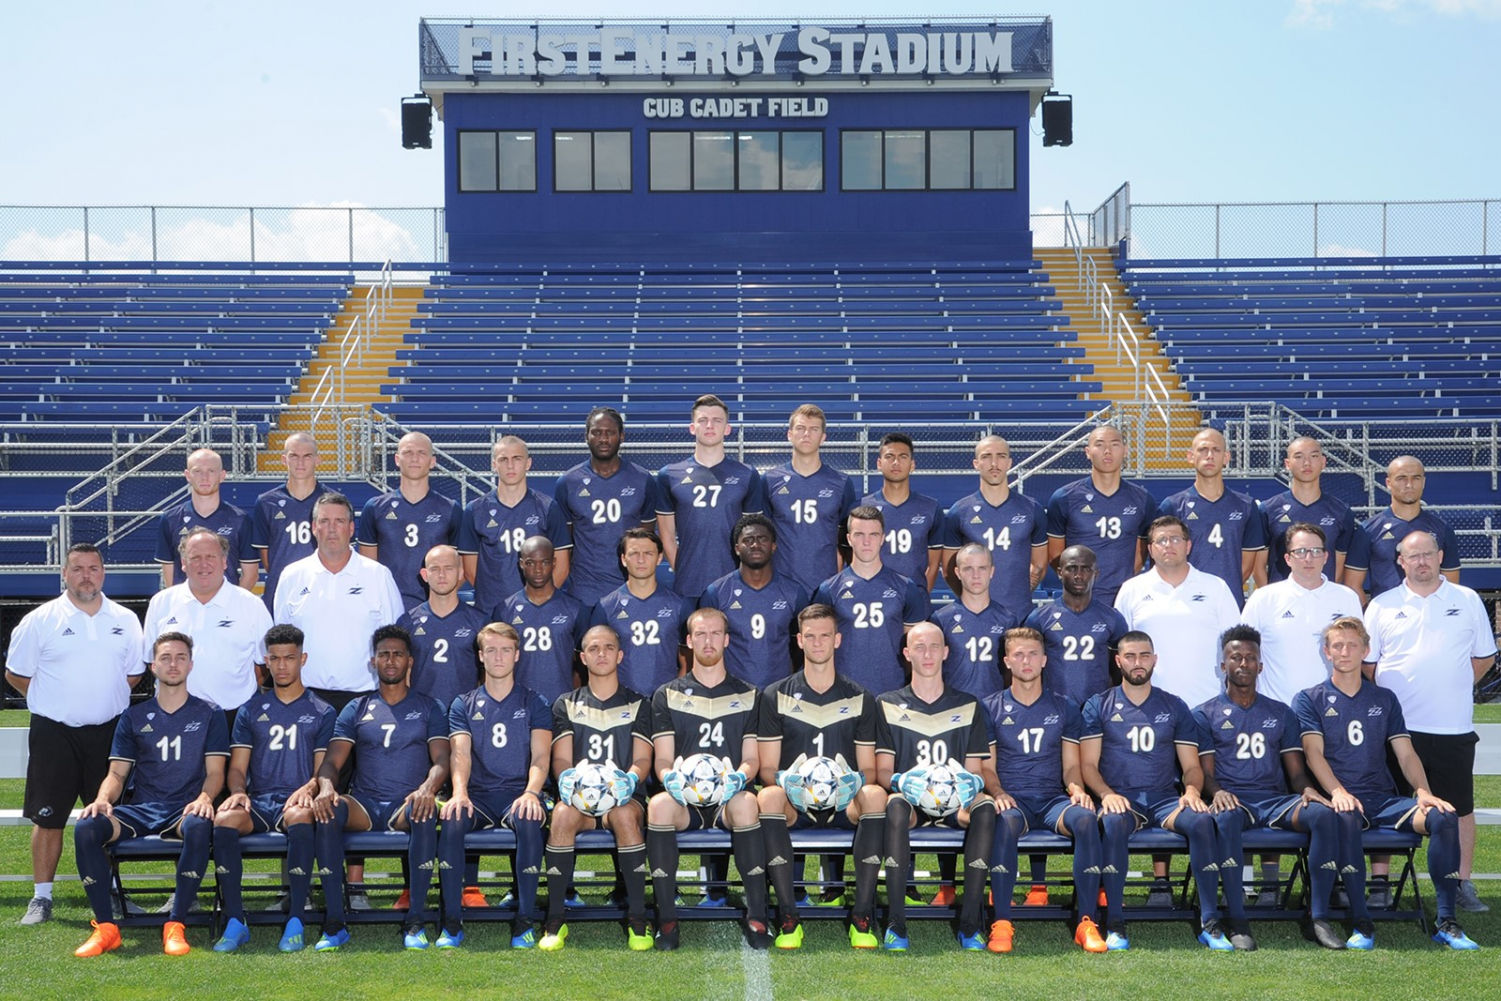 The 2018 Men's Soccer team. (Photo courtesy of the Akron Zips)